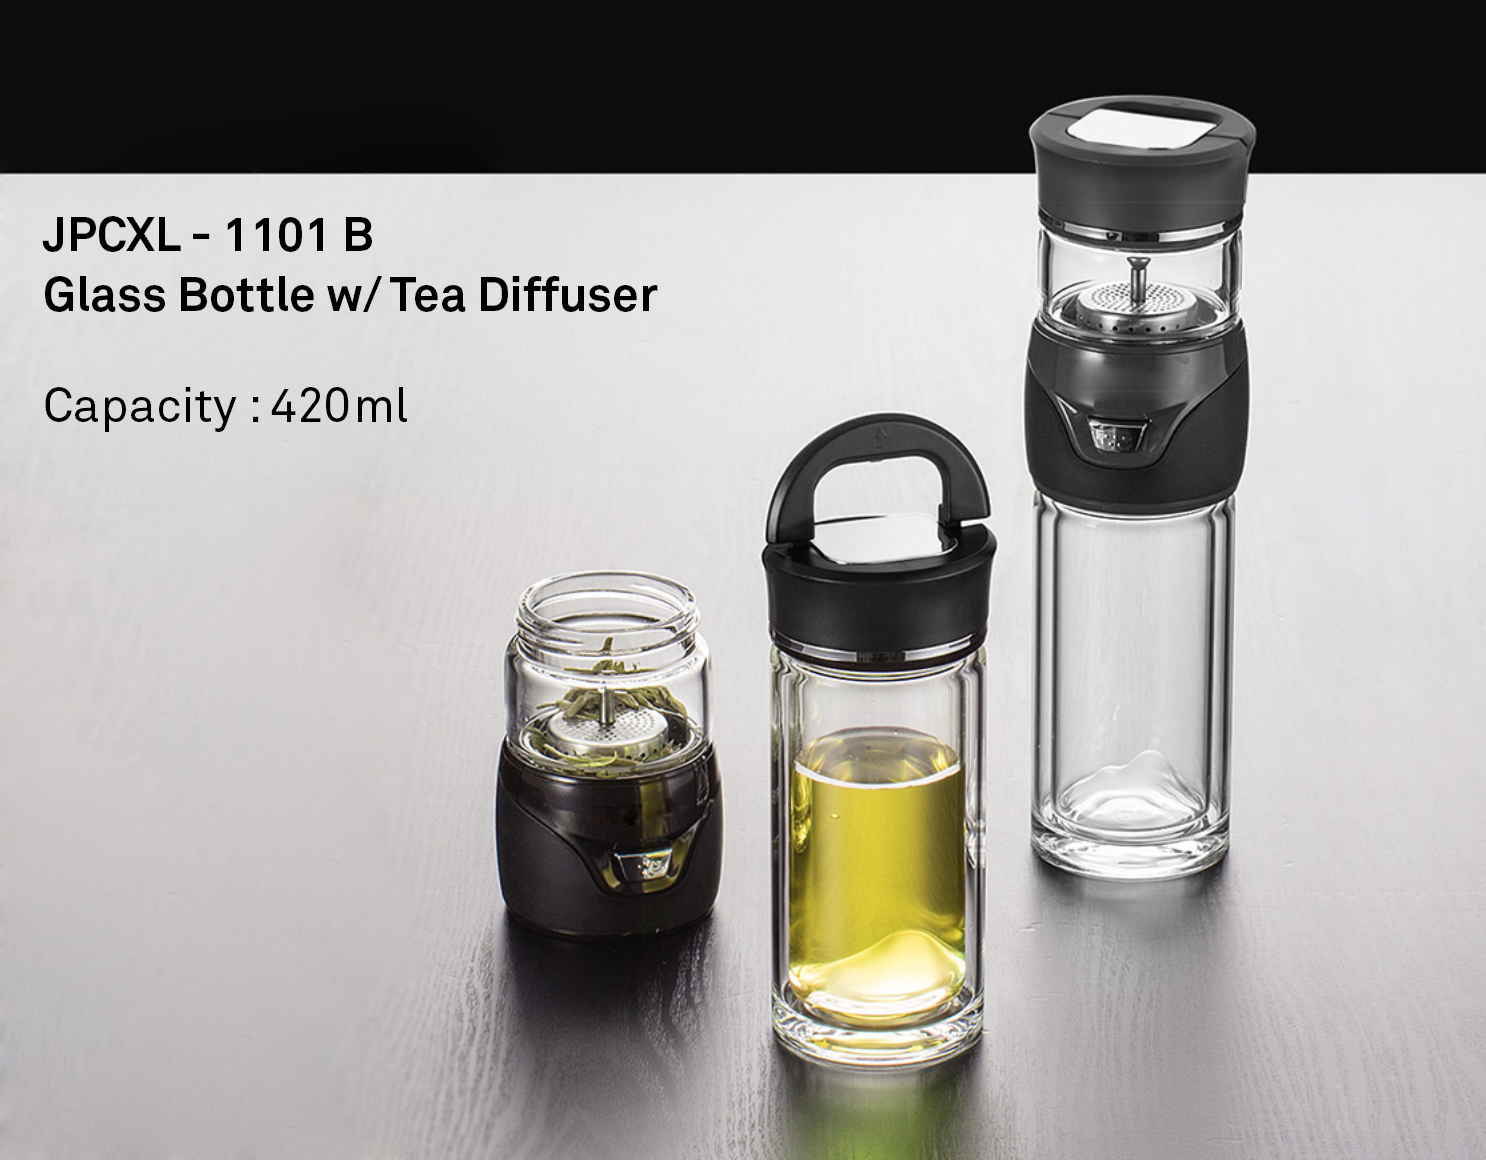 Glass Bottle w/ Tea Diffuser